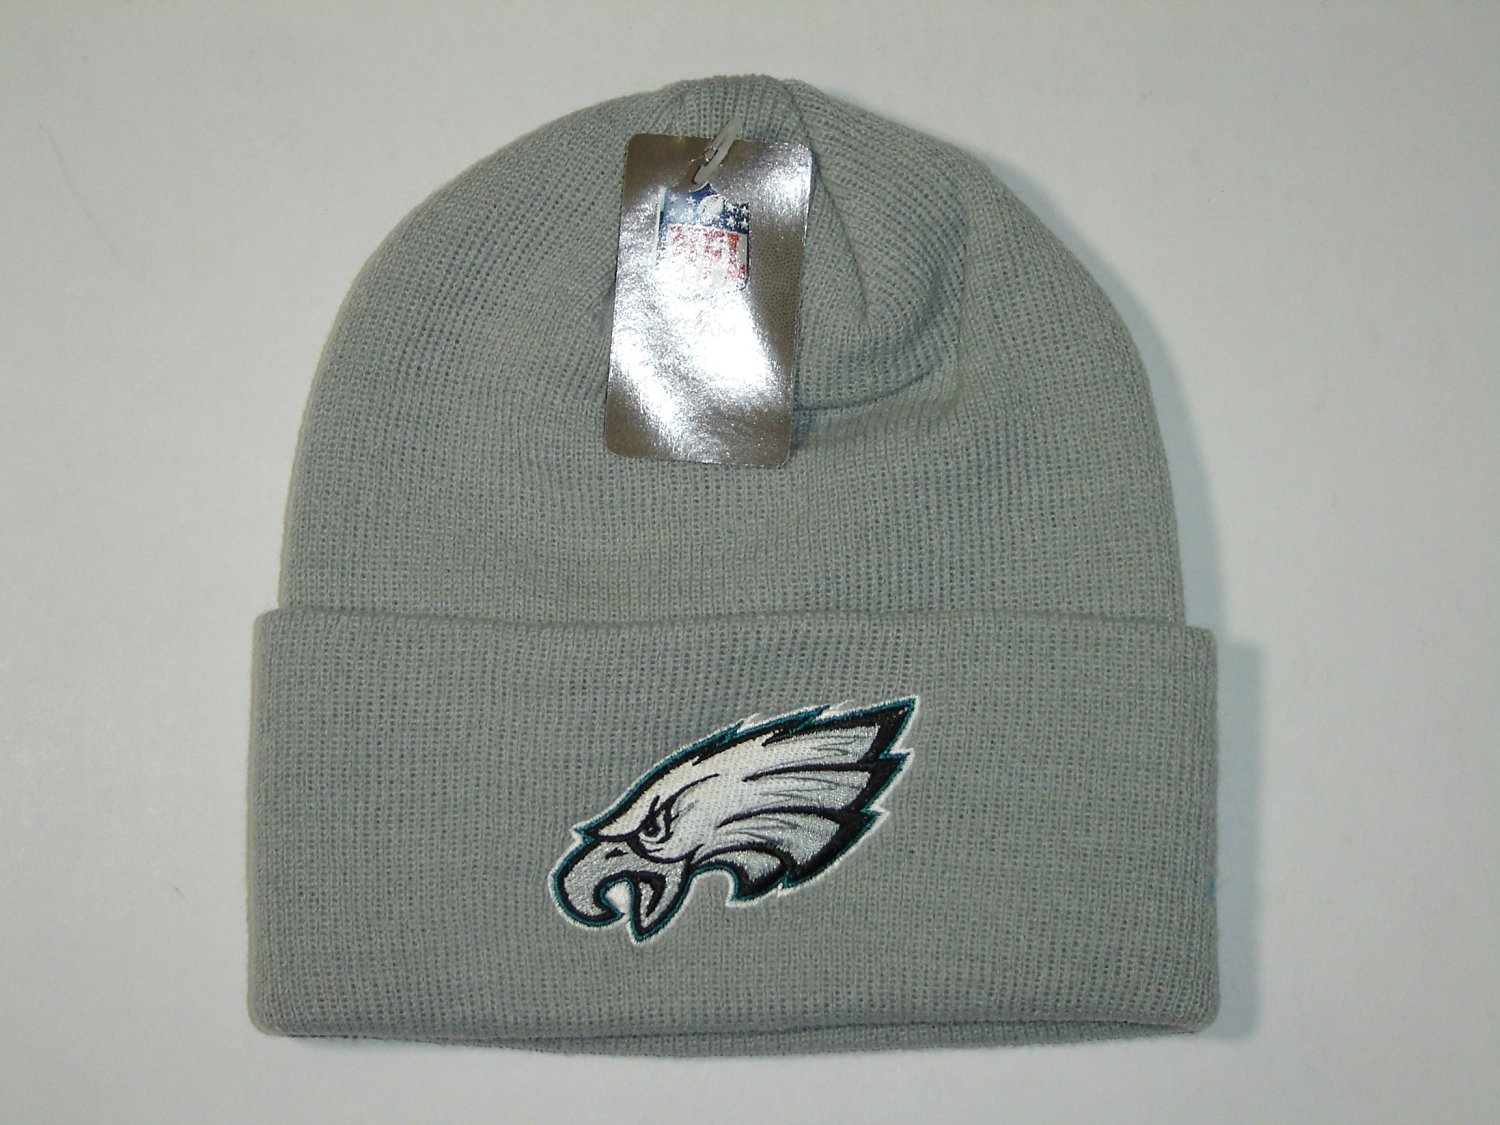 Get Quotations · Authentic NFL Philadelphia Eagles Gray Classic Logo Cuffed  Knit Beanie Hat Cap 330843c9c